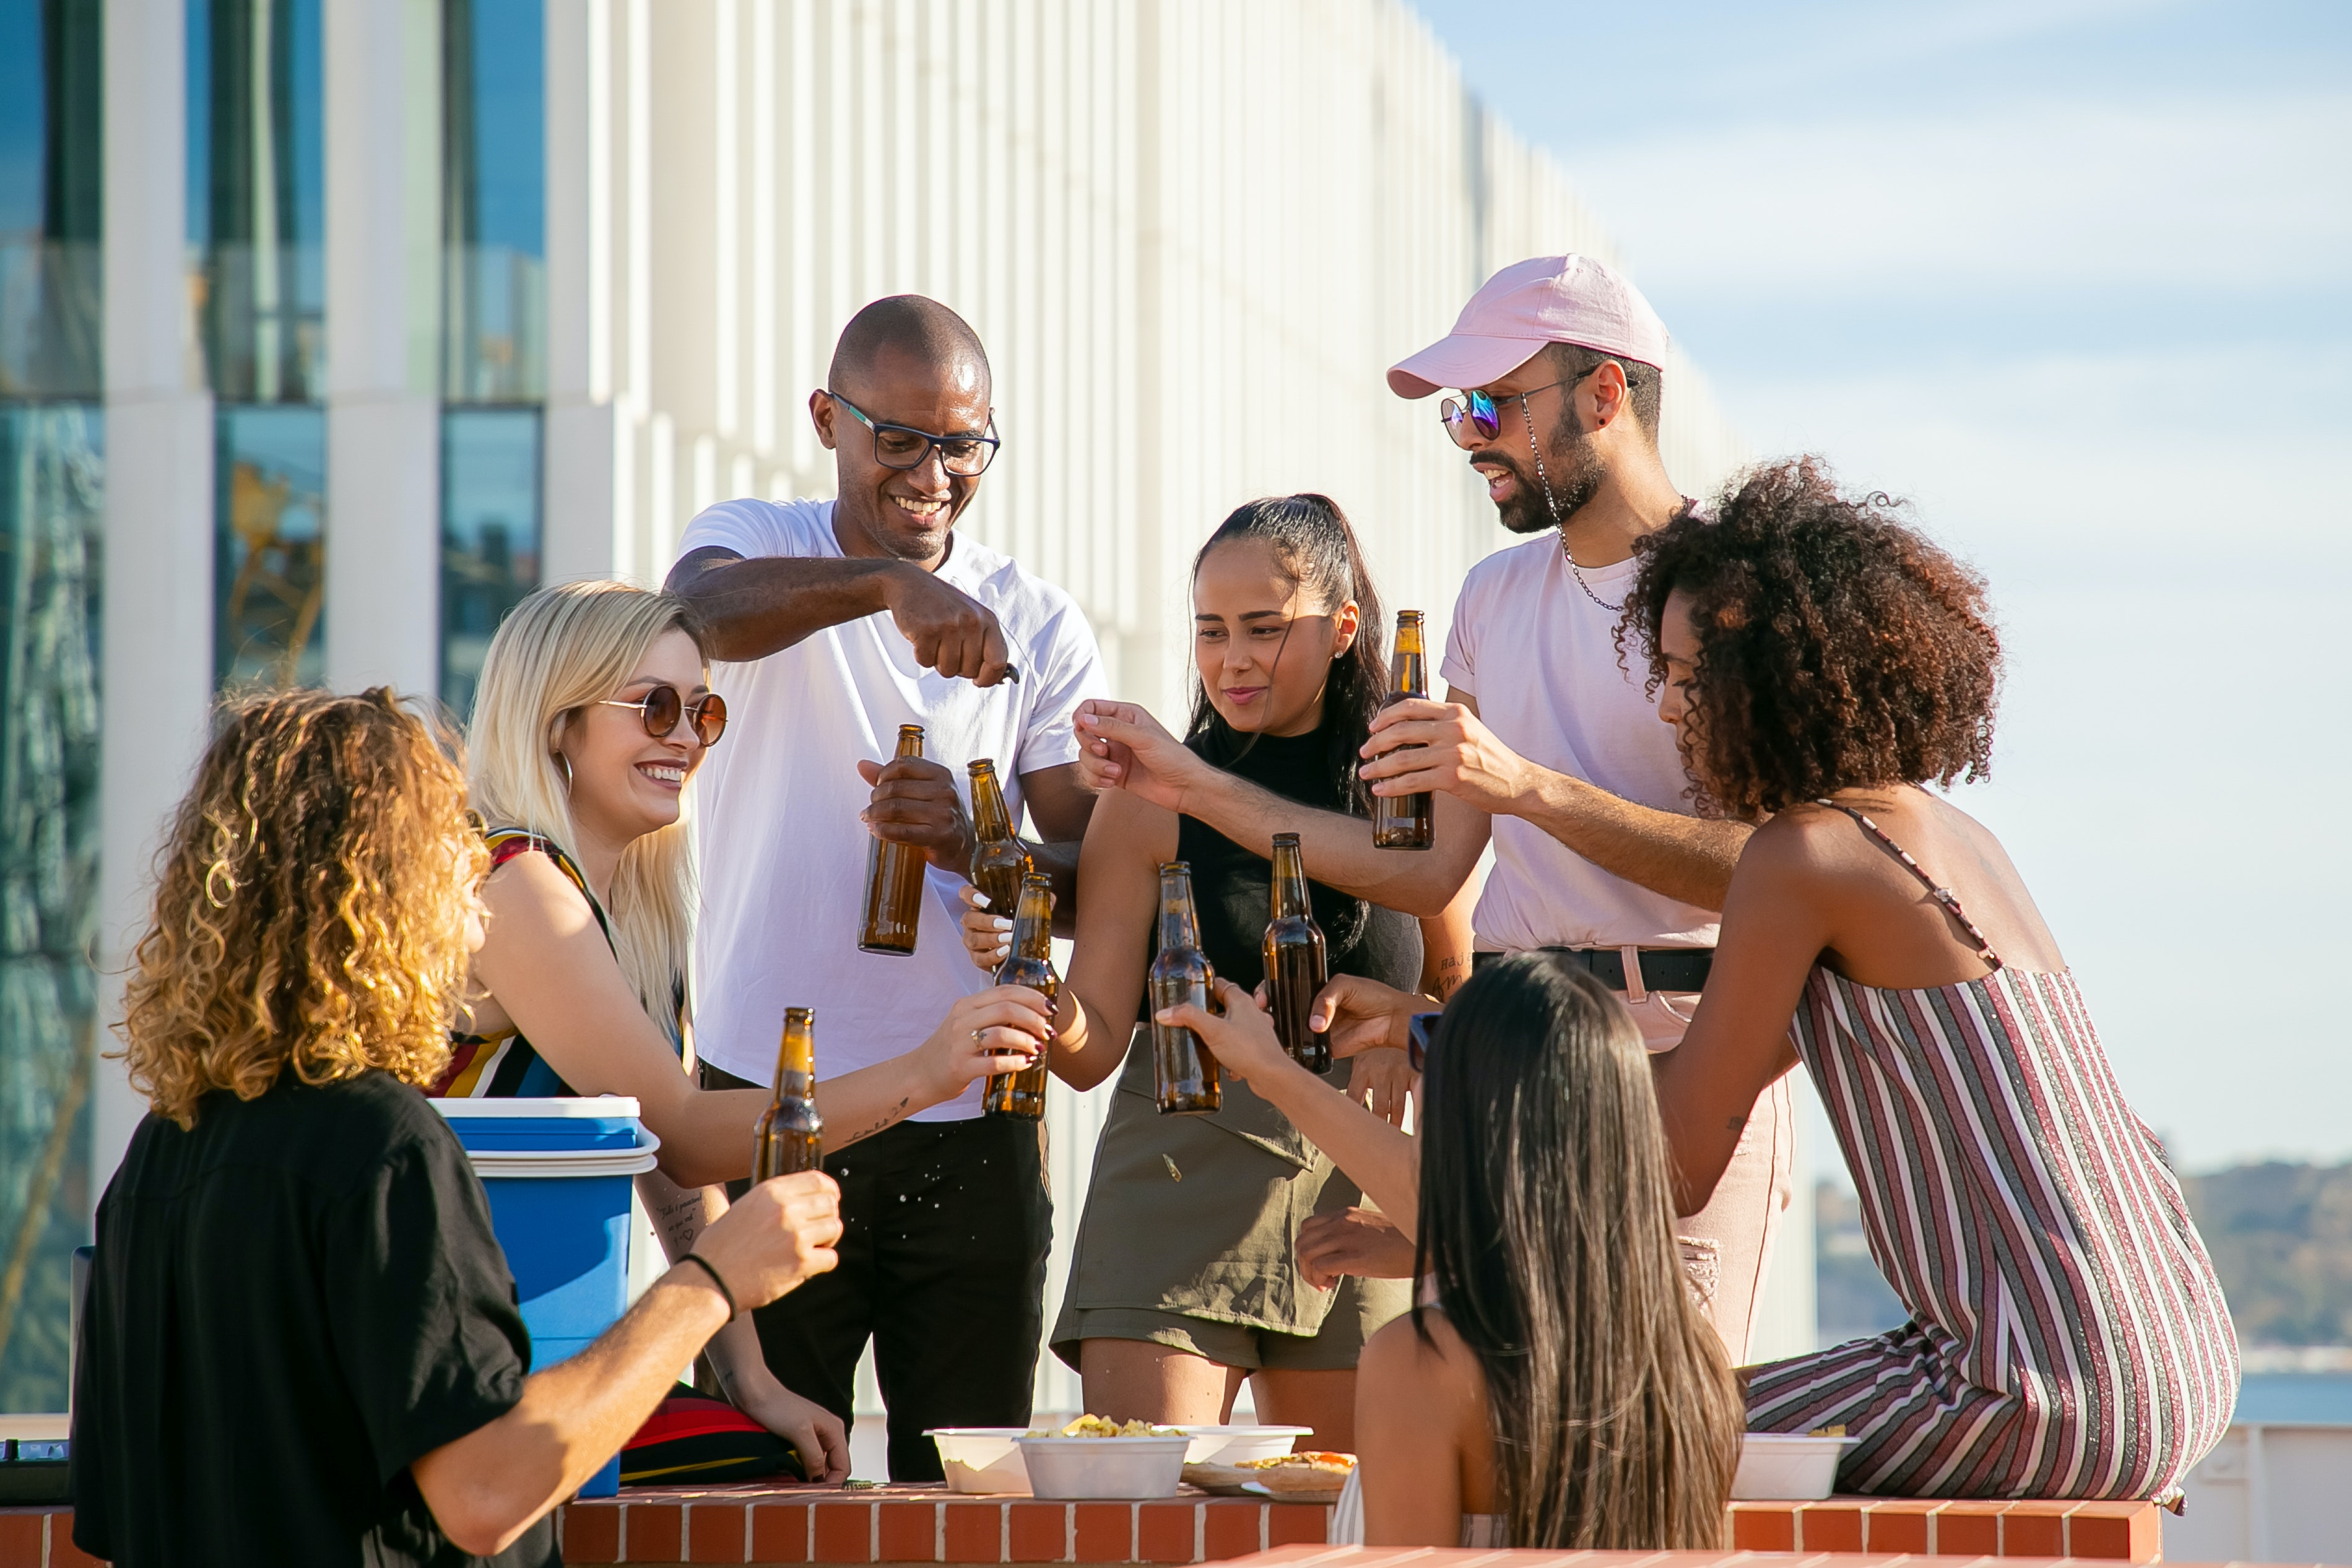 People standing together and holding glass bottles on a rooftop